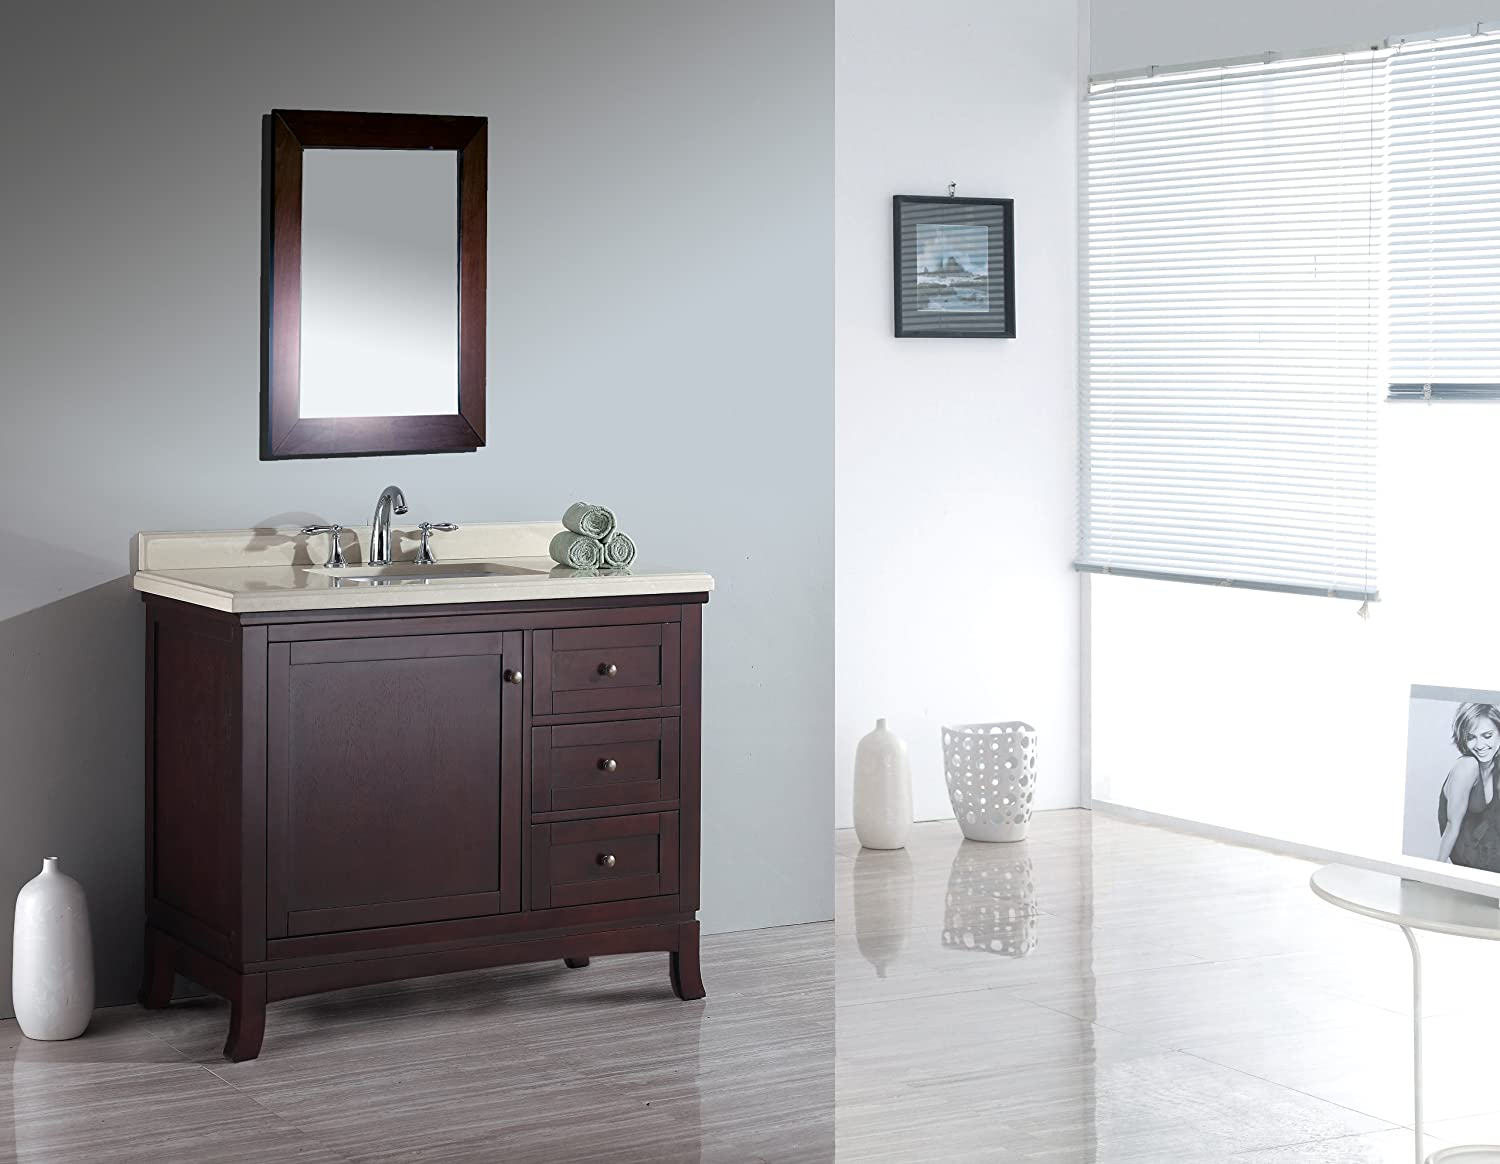 Ove Decors Velega 42 Bathroom 42-Inch Vanity Ensemble with Marble ...